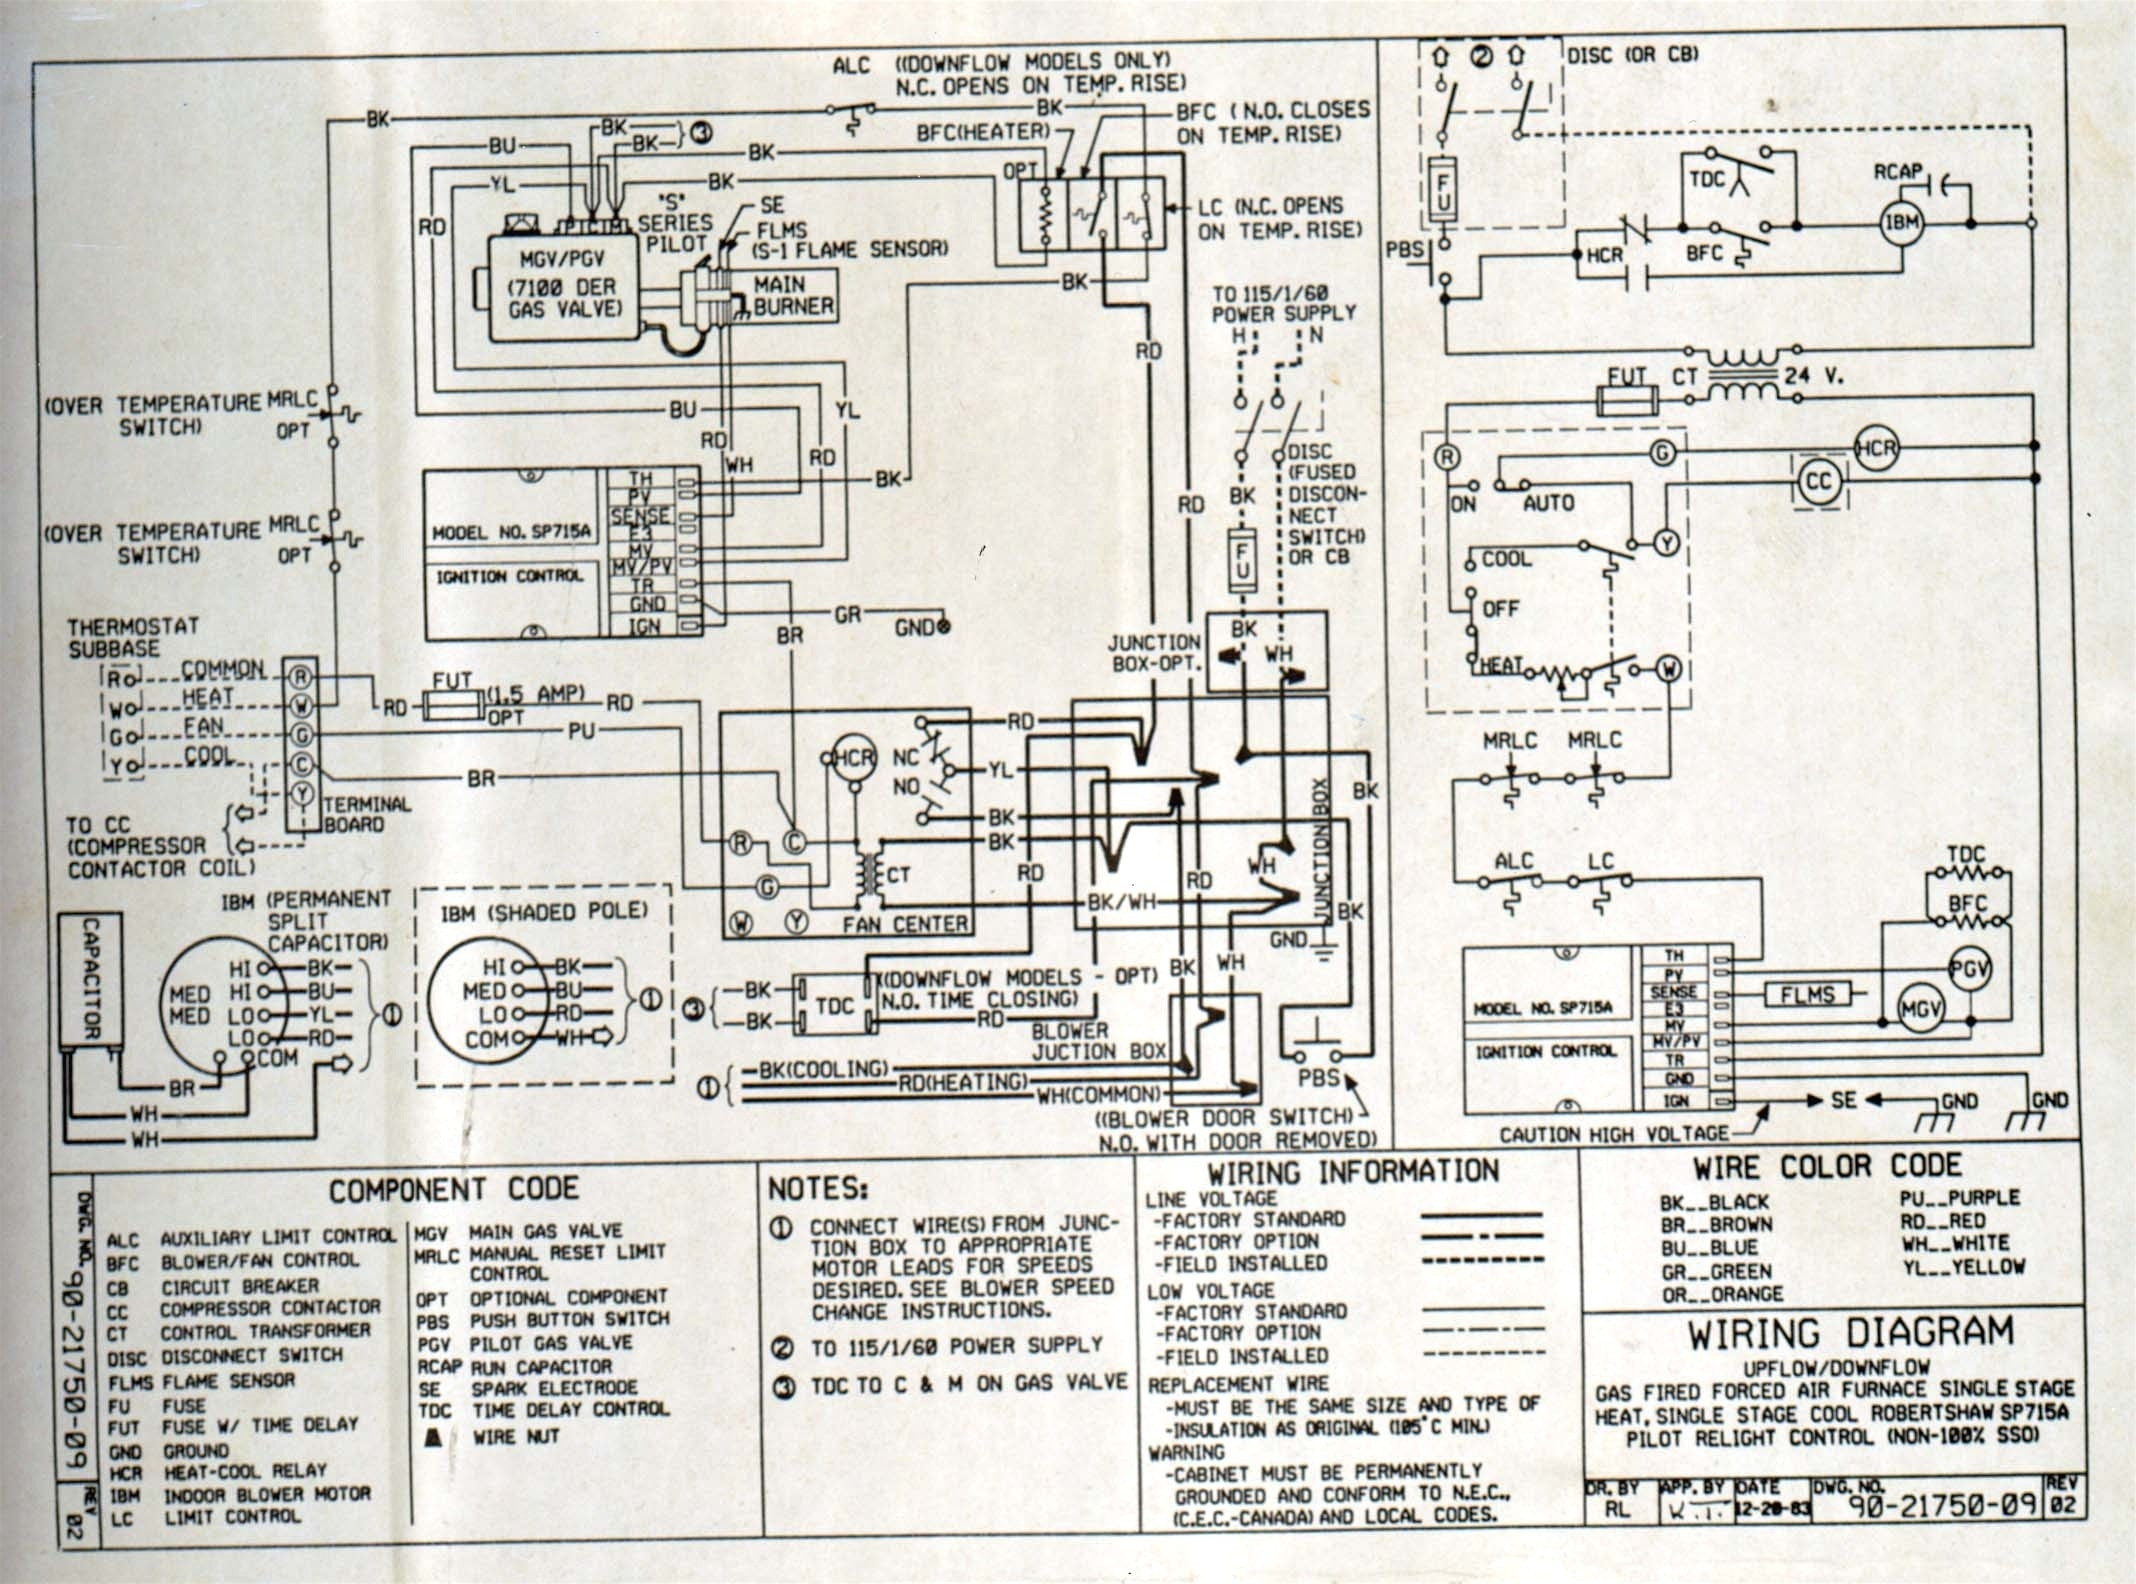 hvac wiring diagrams rheem hvac wiring diagrams rheem air handler wiring schematic | free wiring diagram